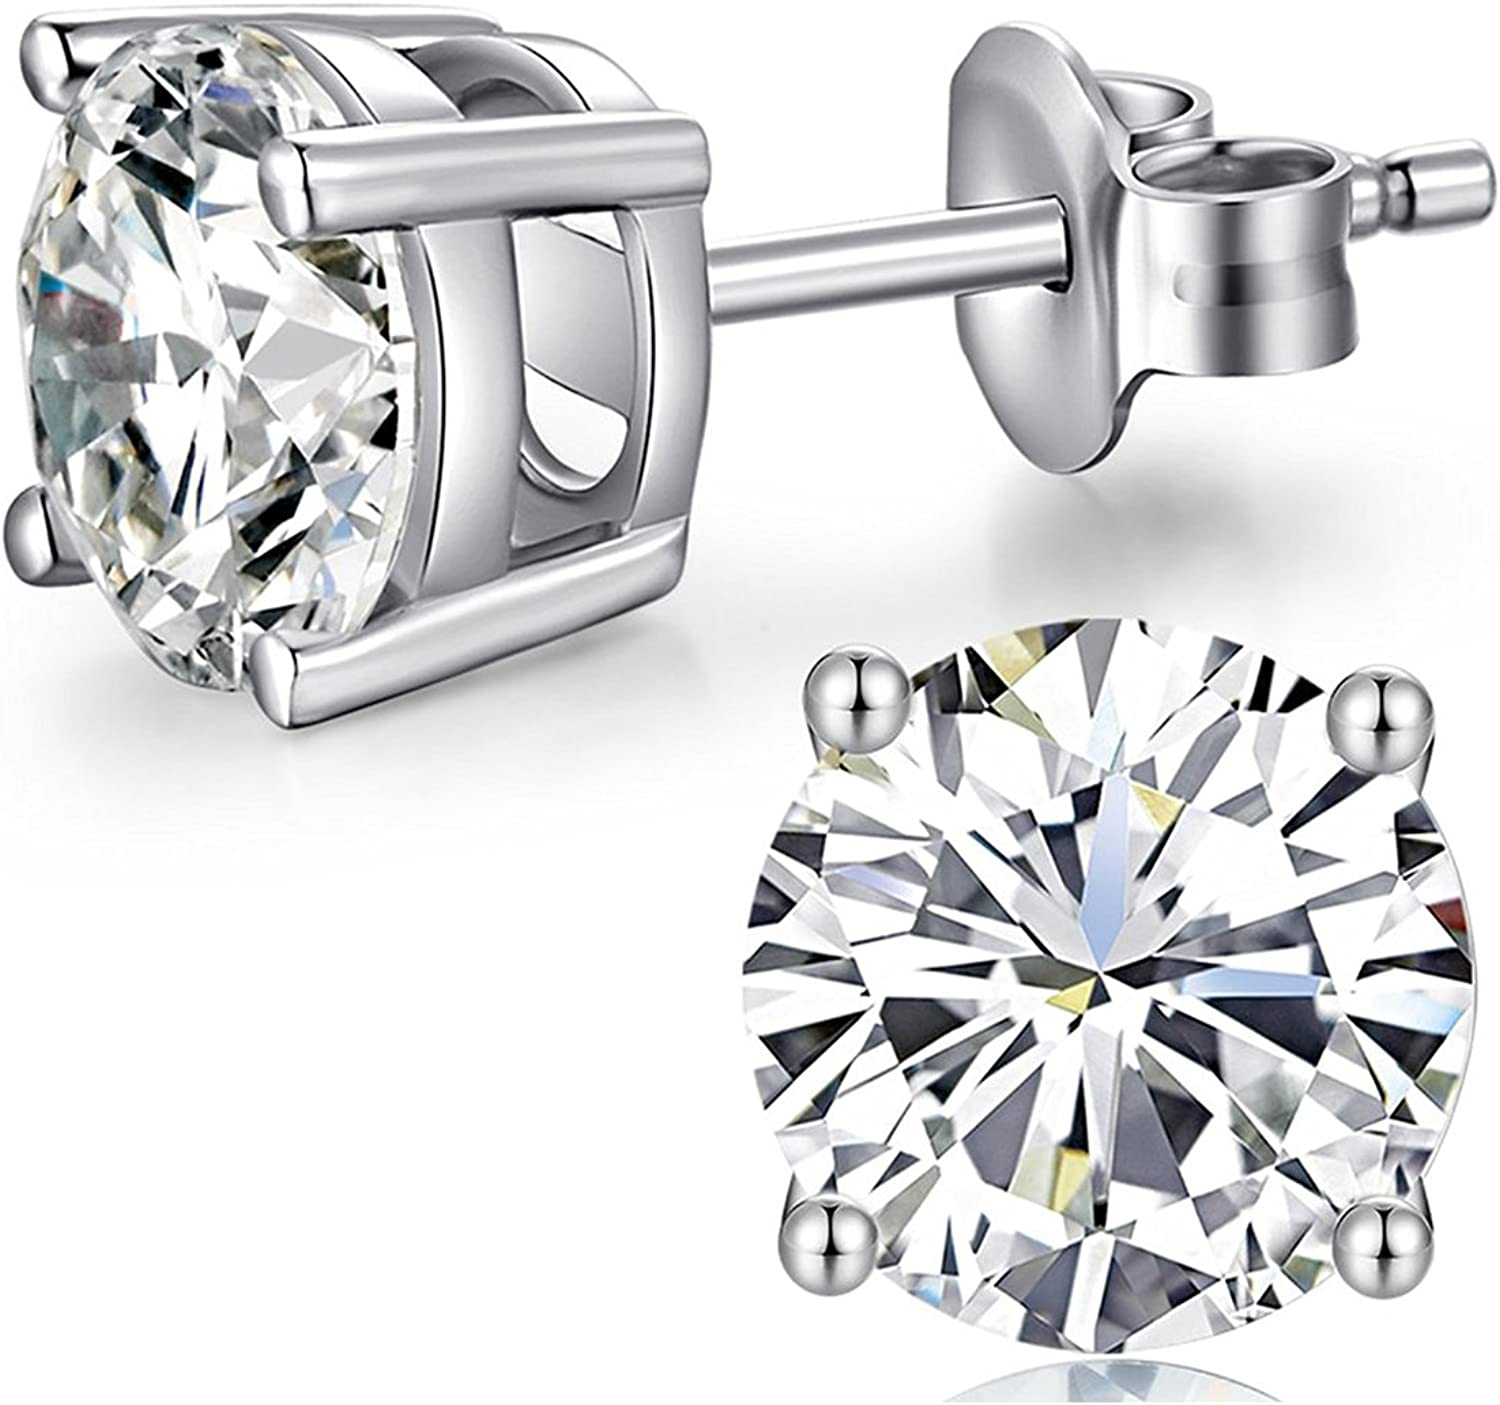 Sterling Silver Stud Earrings with Swarovski Crystal 5-7mm Hypoallergenic Earrings for Women 14K White Gold Plated Simple Chic Studs Earring for Men